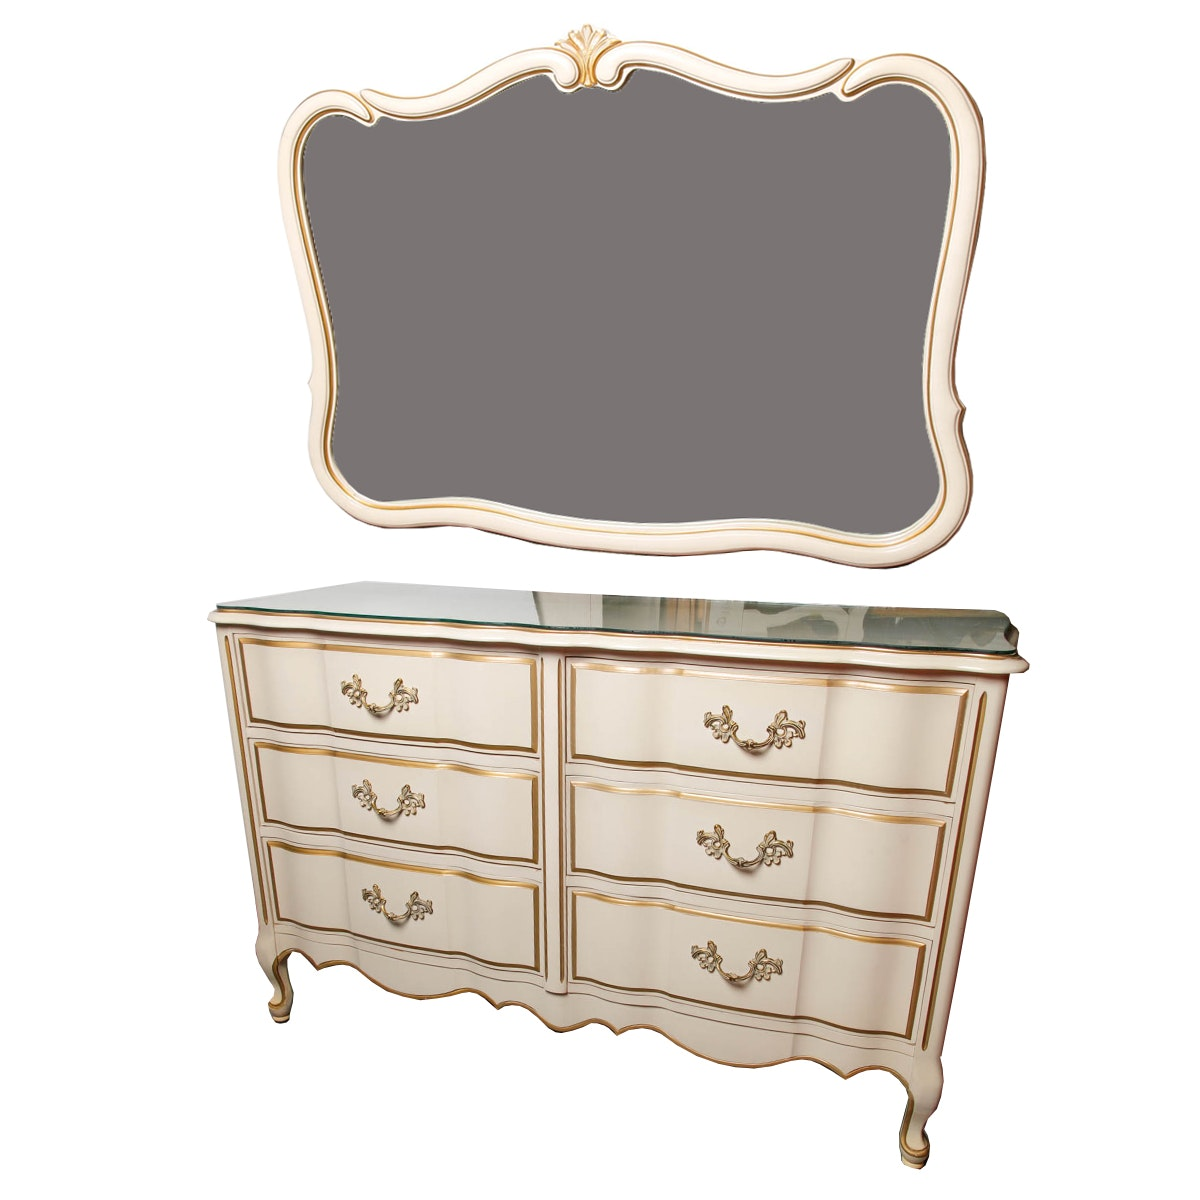 French Provincial Style Dresser and Mirror